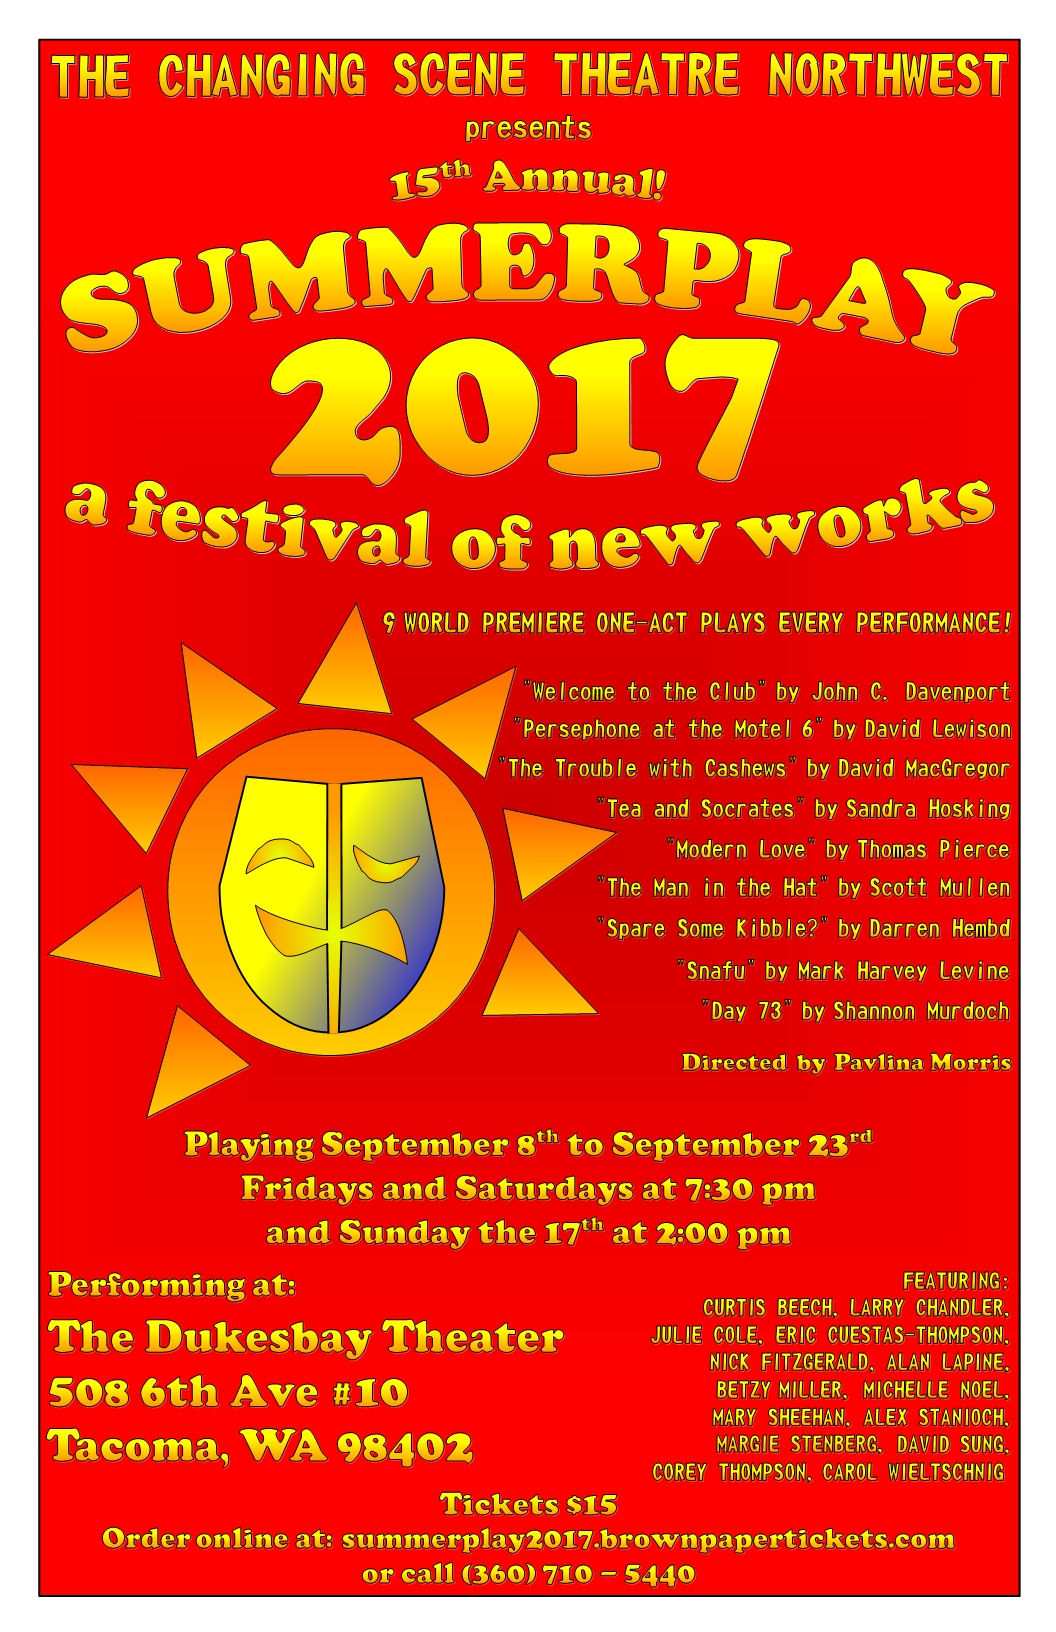 Summerplay 2017 poster - test 3